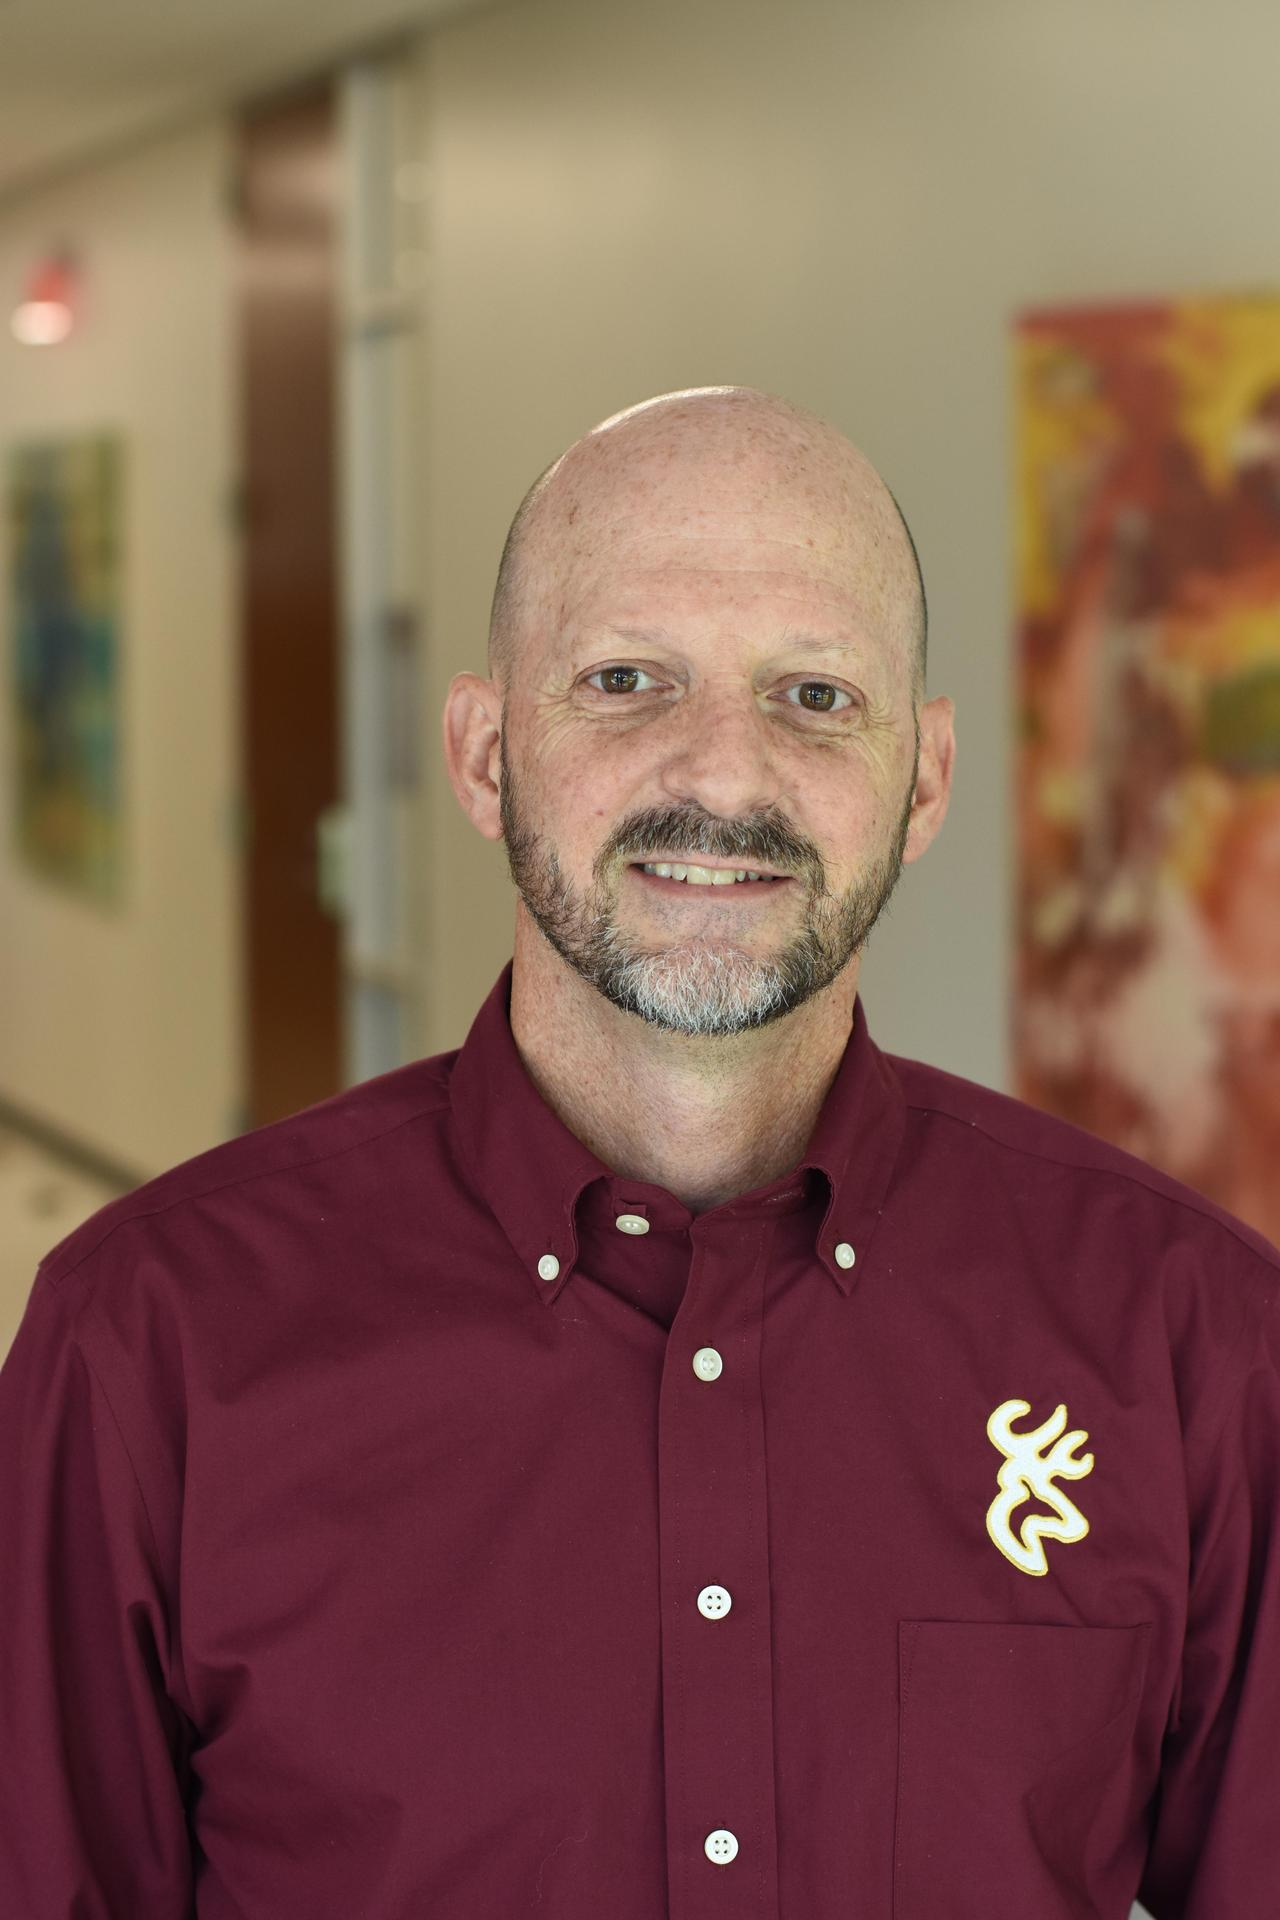 Head shot of DPHS South Campus Assistant Principal Donald Thompson